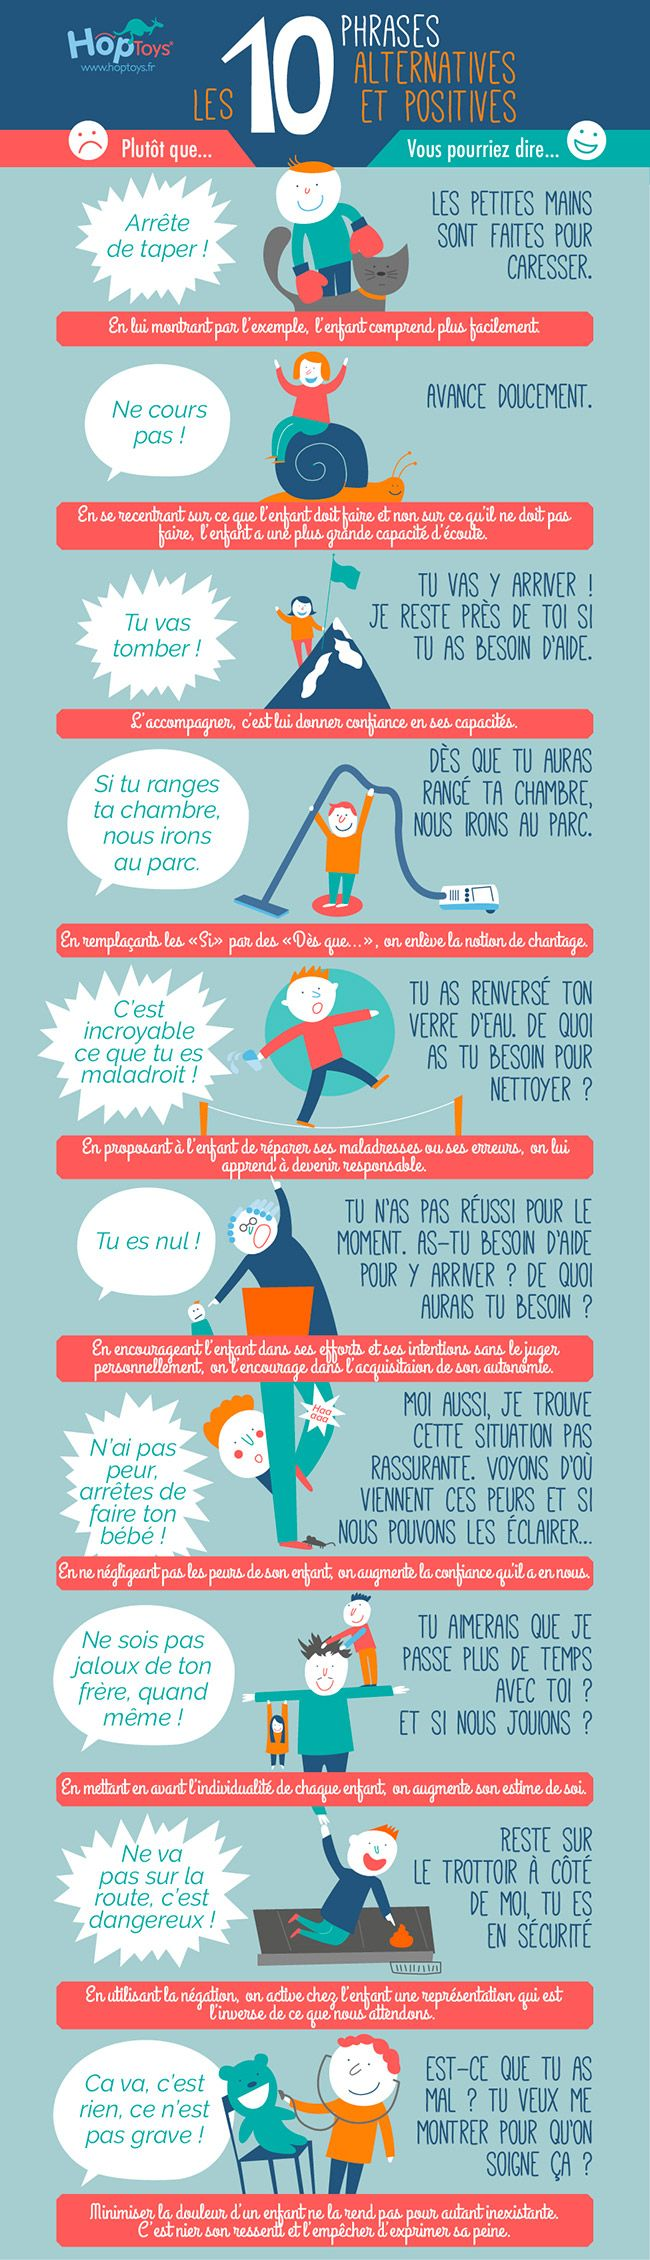 Bienveillance : les 10 phrases alternatives et positives